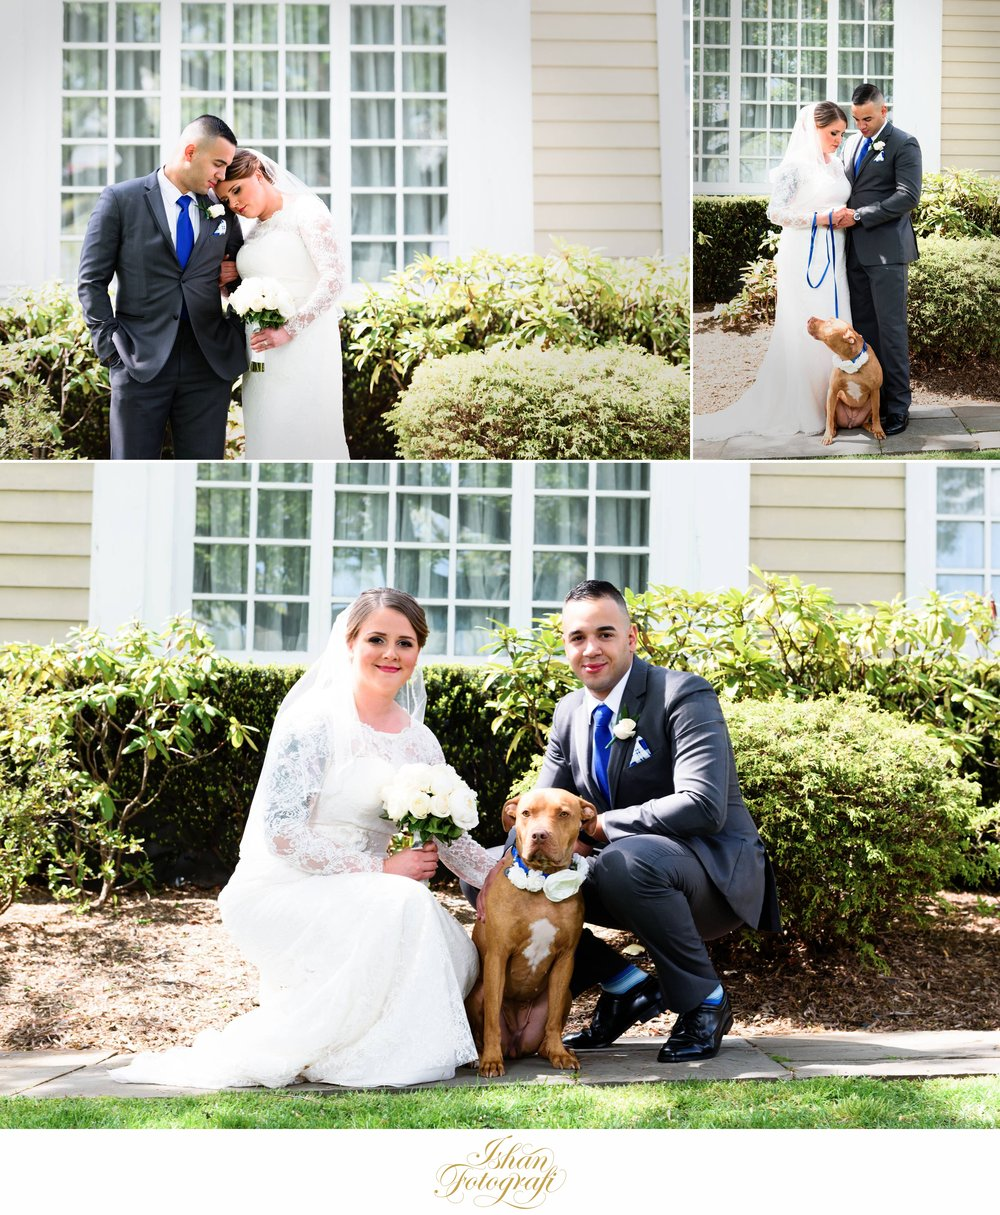 Amanda & Jeffrey love their dog! They flew her from California which is where our bride & groom reside. How cute!